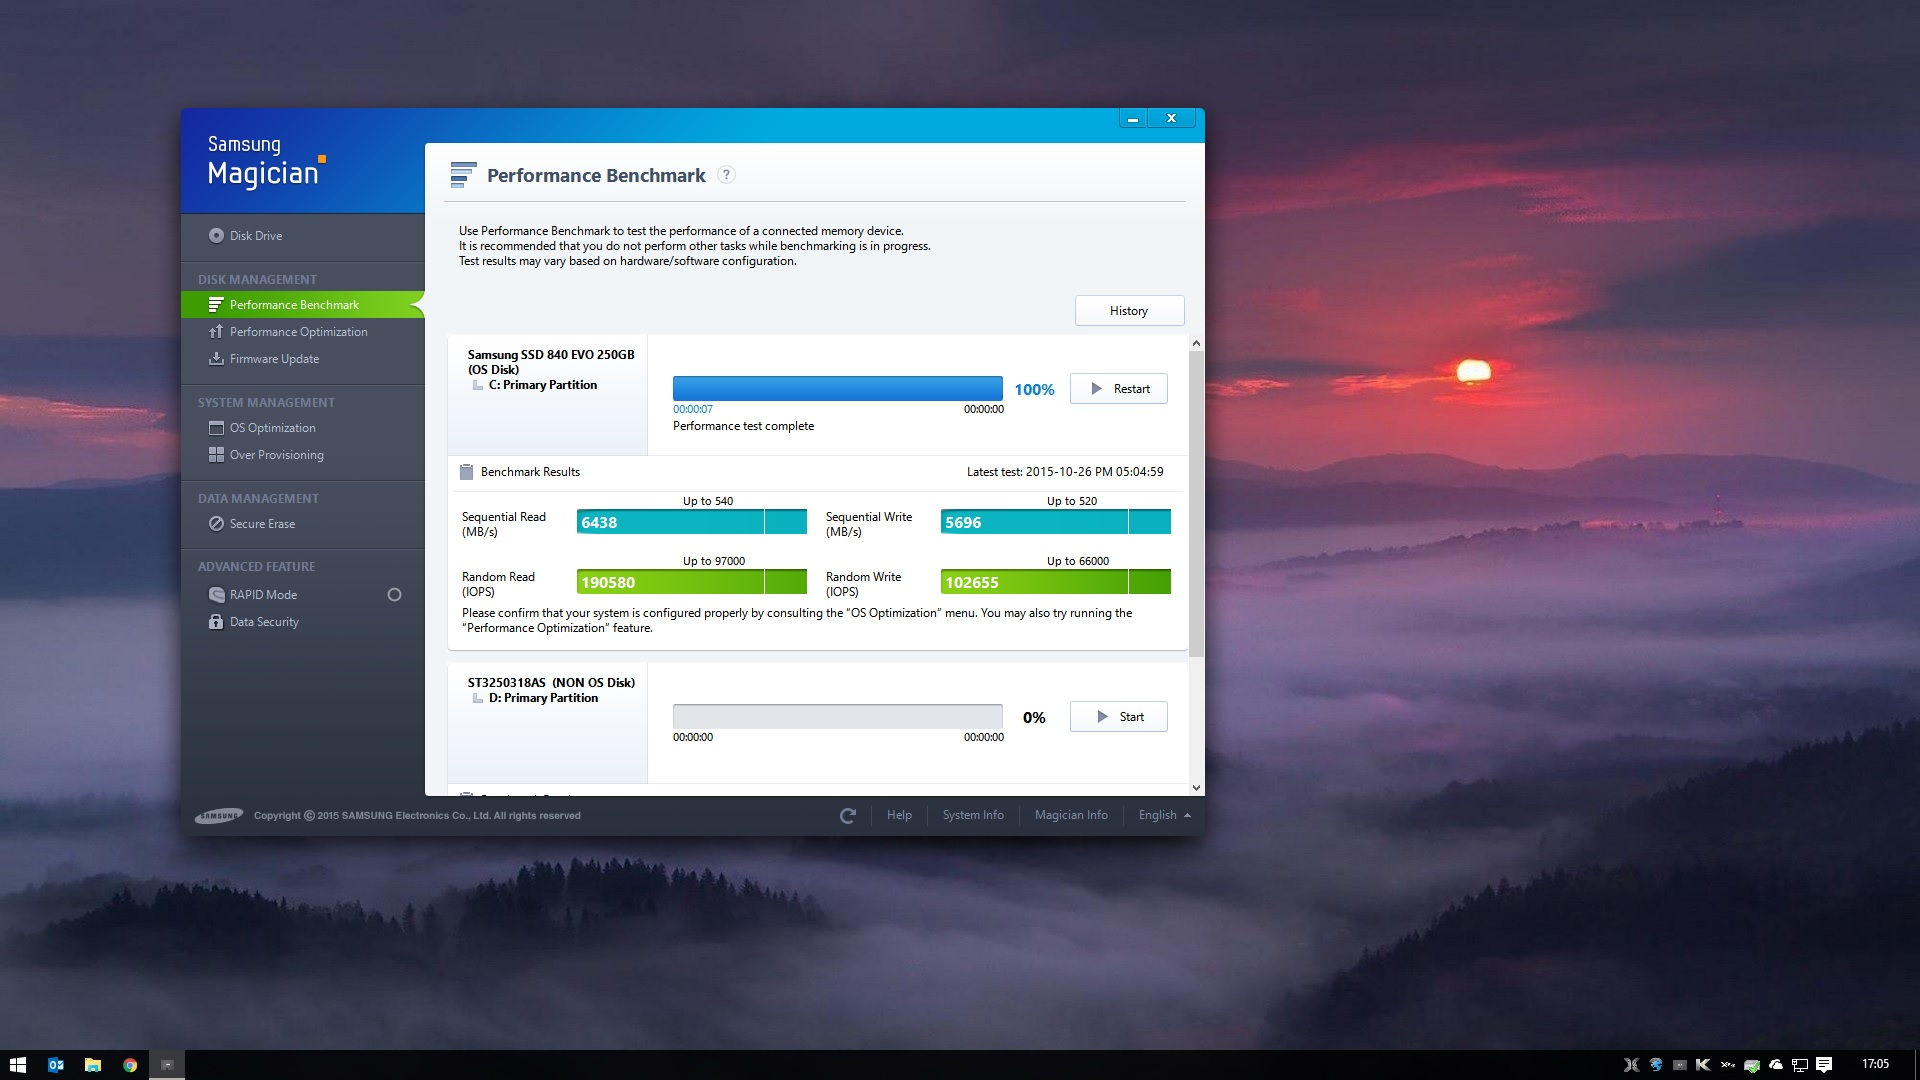 Samsung Magician Update | Windows Forum